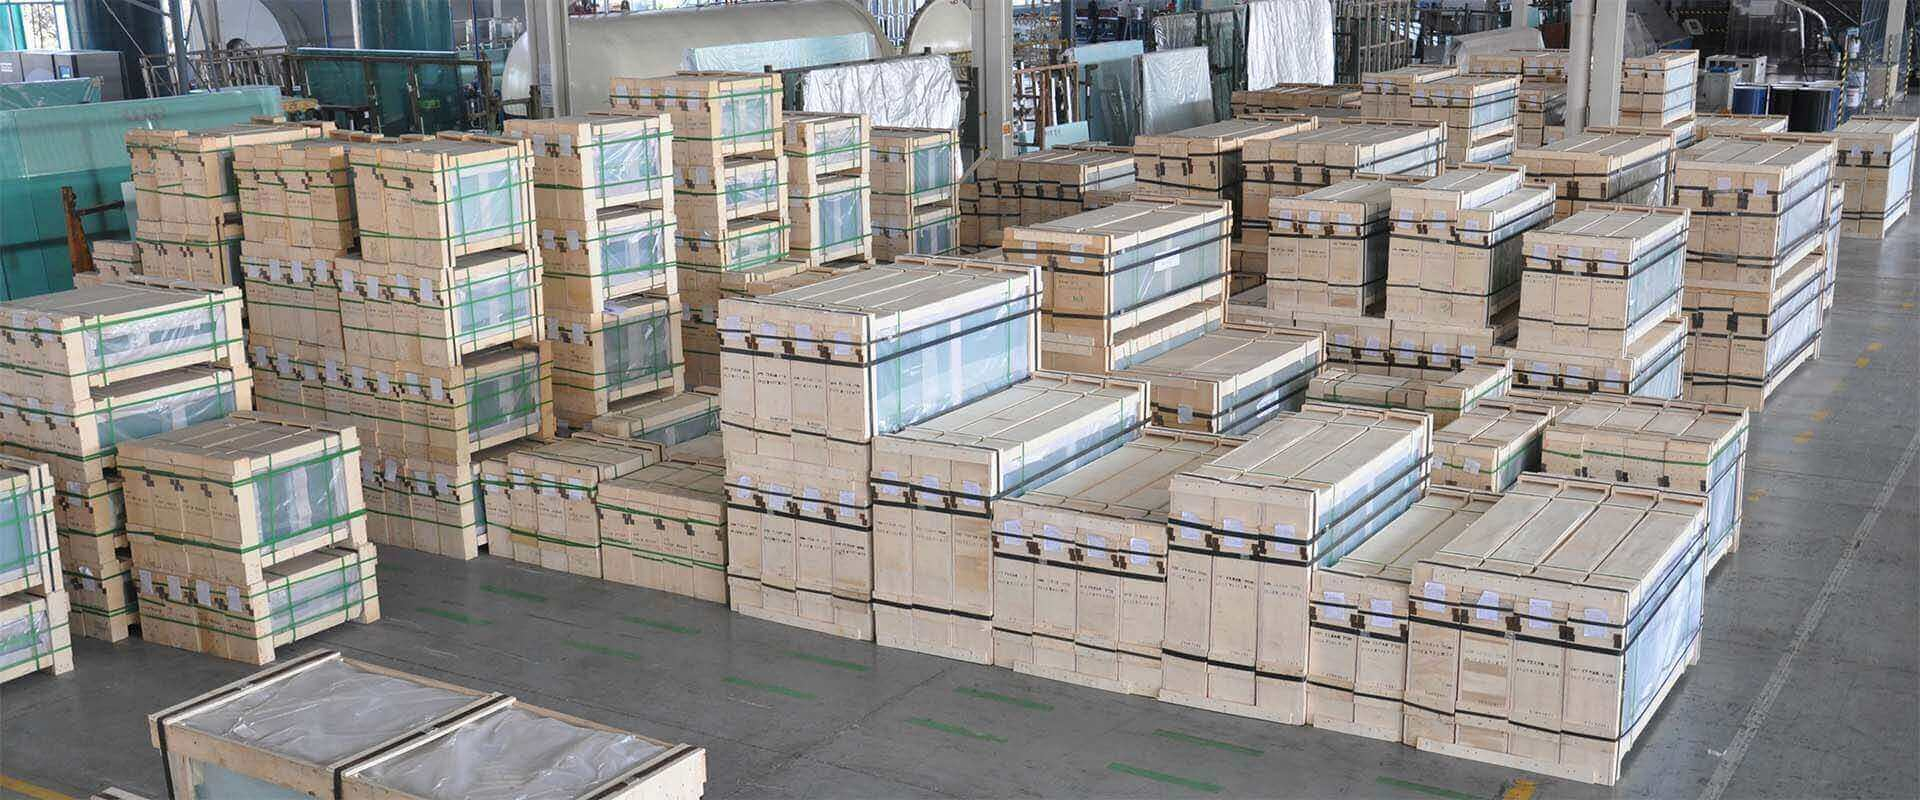 Tempered Glass,Tempered Glass with Holes and Cutouts, Balustrade Tempered Glass, Tempered Balcony Glass, Tempered Swimming Pool Fencing Glass, Tempered Pool Fencing Glass, Toughened Glass Door Panel, Tempered Storefront Glass, Tempered Shop front Glass, Tempered storefront Glass, Tempered Wardrobe Glass, Tempered Sliding Door Glass, Tempered Silkscreen Print Partition Glass, Tempered Shower Door Glass, Tempered Shower Enclosure Glass, Tempered Shower Fixation Glass, Tempered Spandrel Glass, Tempered Heat Soaked Glass, Tempered Heat Treated Glass, Tempered Furniture Glass, Tempered Window Glass Panel, Tempered Glass House Screen, Tempered Skylight Glass, Tempered Table Glass, Tempered Furniture Glass, Tempered Shower Soap Dish Glass Shelf, Tempered Window Glass Louvre, Tempered Door Glass Louvre, Tempered Screen Glass, Tempered Stair Railing Glass, Tempered Laminated Glass, Tempered Ceramic Frit Laminated Glass, Tempered Silkscreen Print Laminated Glass Wall, Tempered Silkscreen Print Glass Door, Tempered Ceramic Frit Glass Panel, Printing Tempered Glass, Laminated Tempered Glass Roof, Laminated Tempered Glass Overhead, Heat Strengthened Laminated Glass Overhead, Heat strengthened Laminated Glass Roof, Heat Strengthened Laminated Glass Skylight, Semi-Tempered Laminated Glass, Semi-Toughened Laminated Glass, Tempered Glass Supplier, Tempered Glass Manufacturer, Shower Cubicles Glass